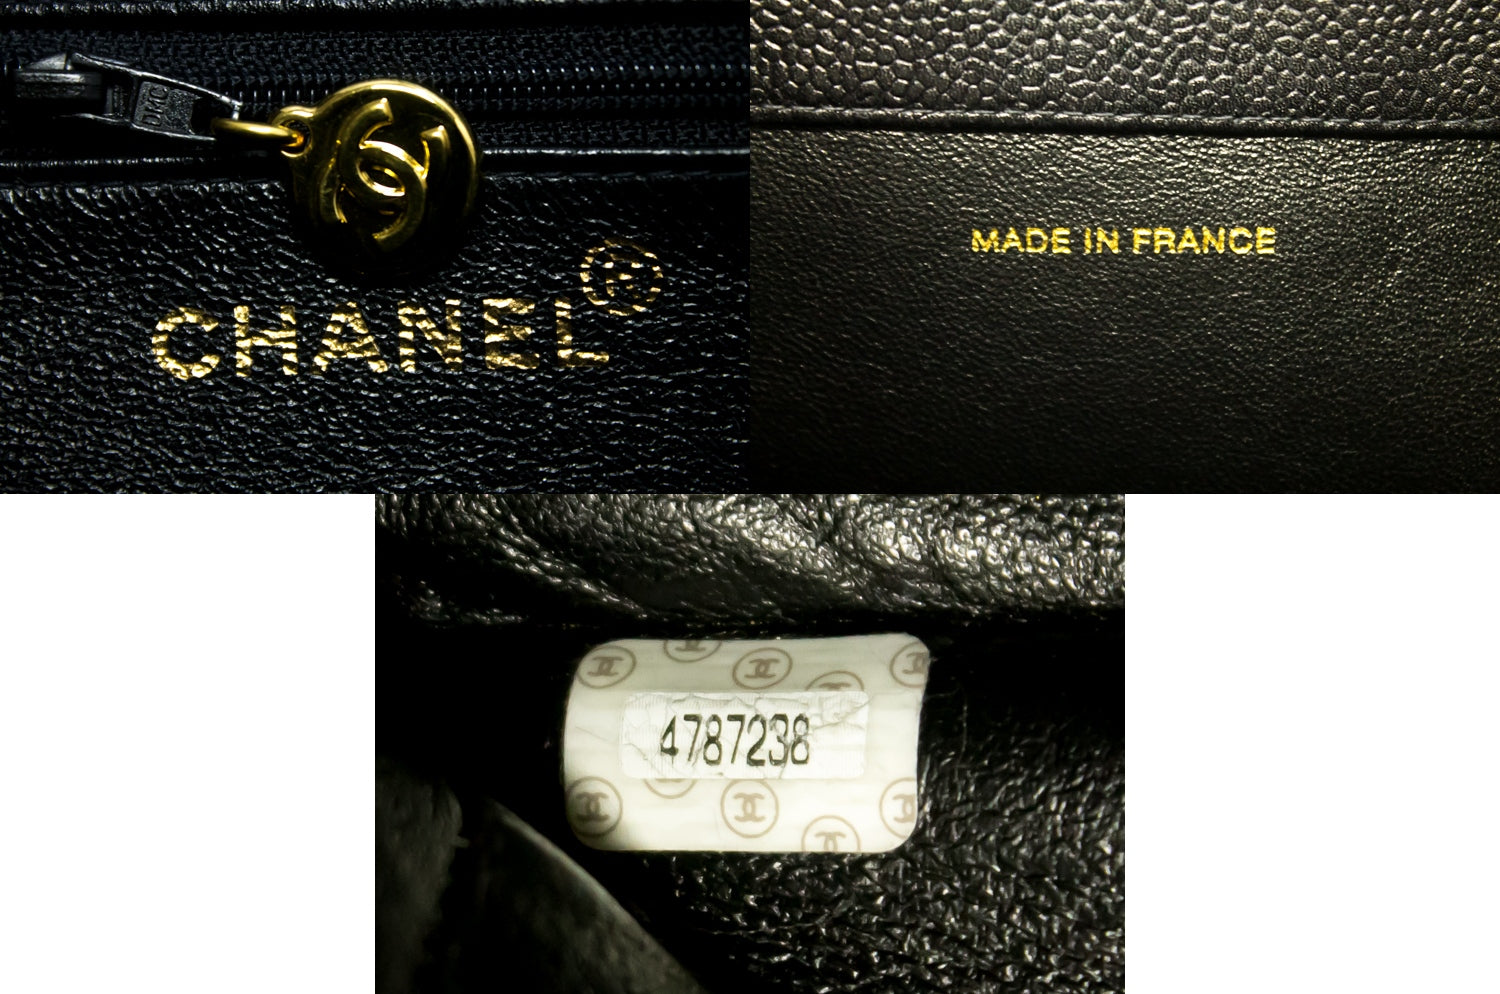 e081514e395e CHANEL Caviar Jumbo Chain Shoulder Bag Black Leather Large Big k22-Chanel- hannari- ...